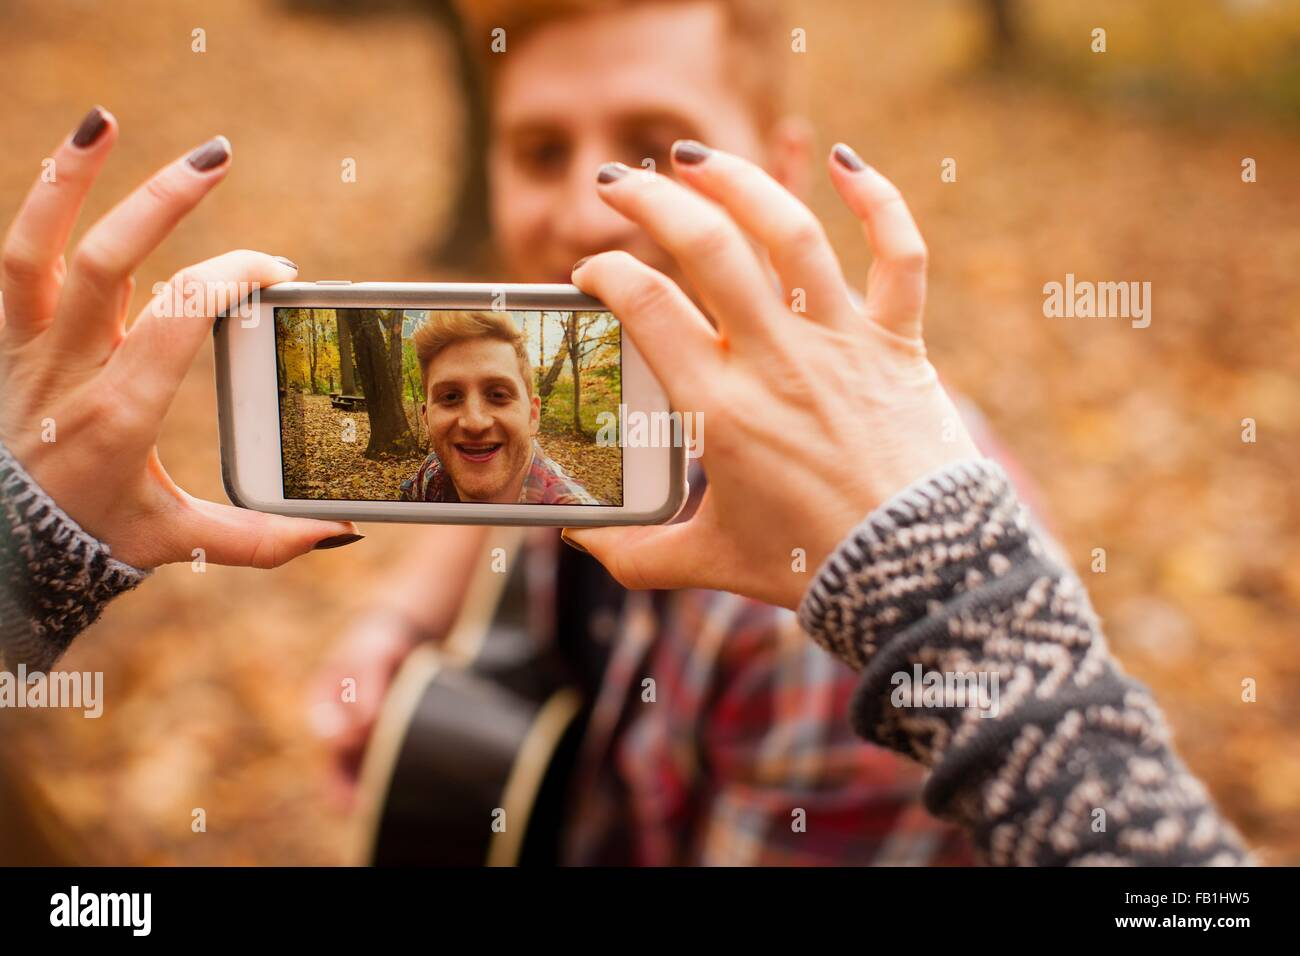 Mains de young woman photographing boyfriend sur smartphone en forêt d'automne Photo Stock